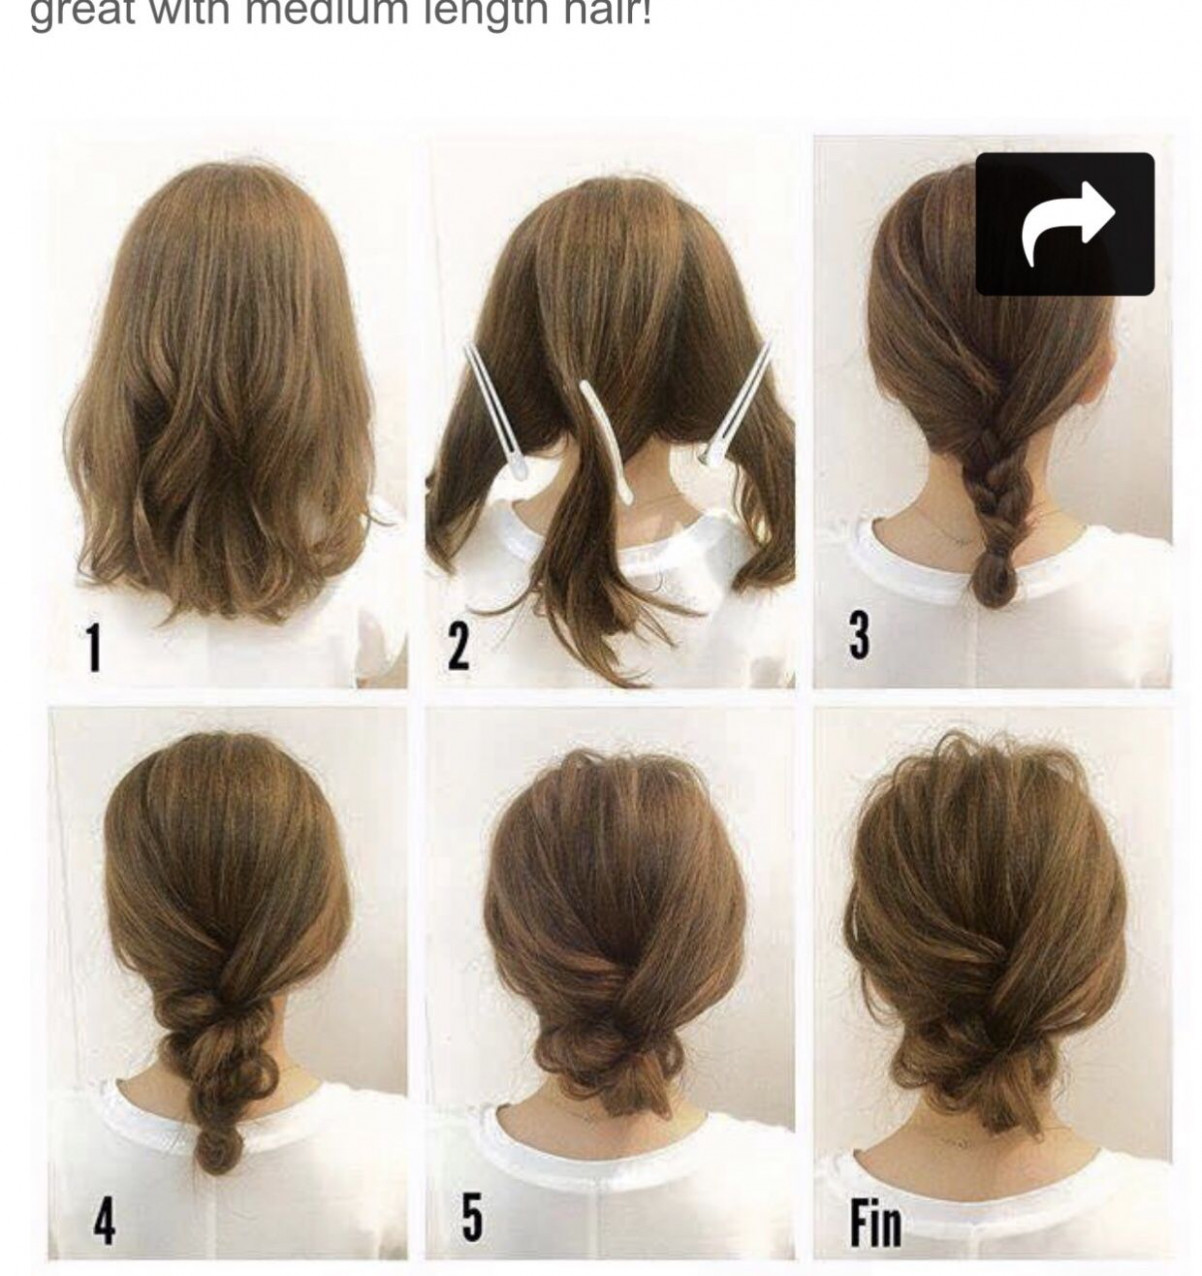 Hair tutorials | hair tutorials for medium hair, hair styles